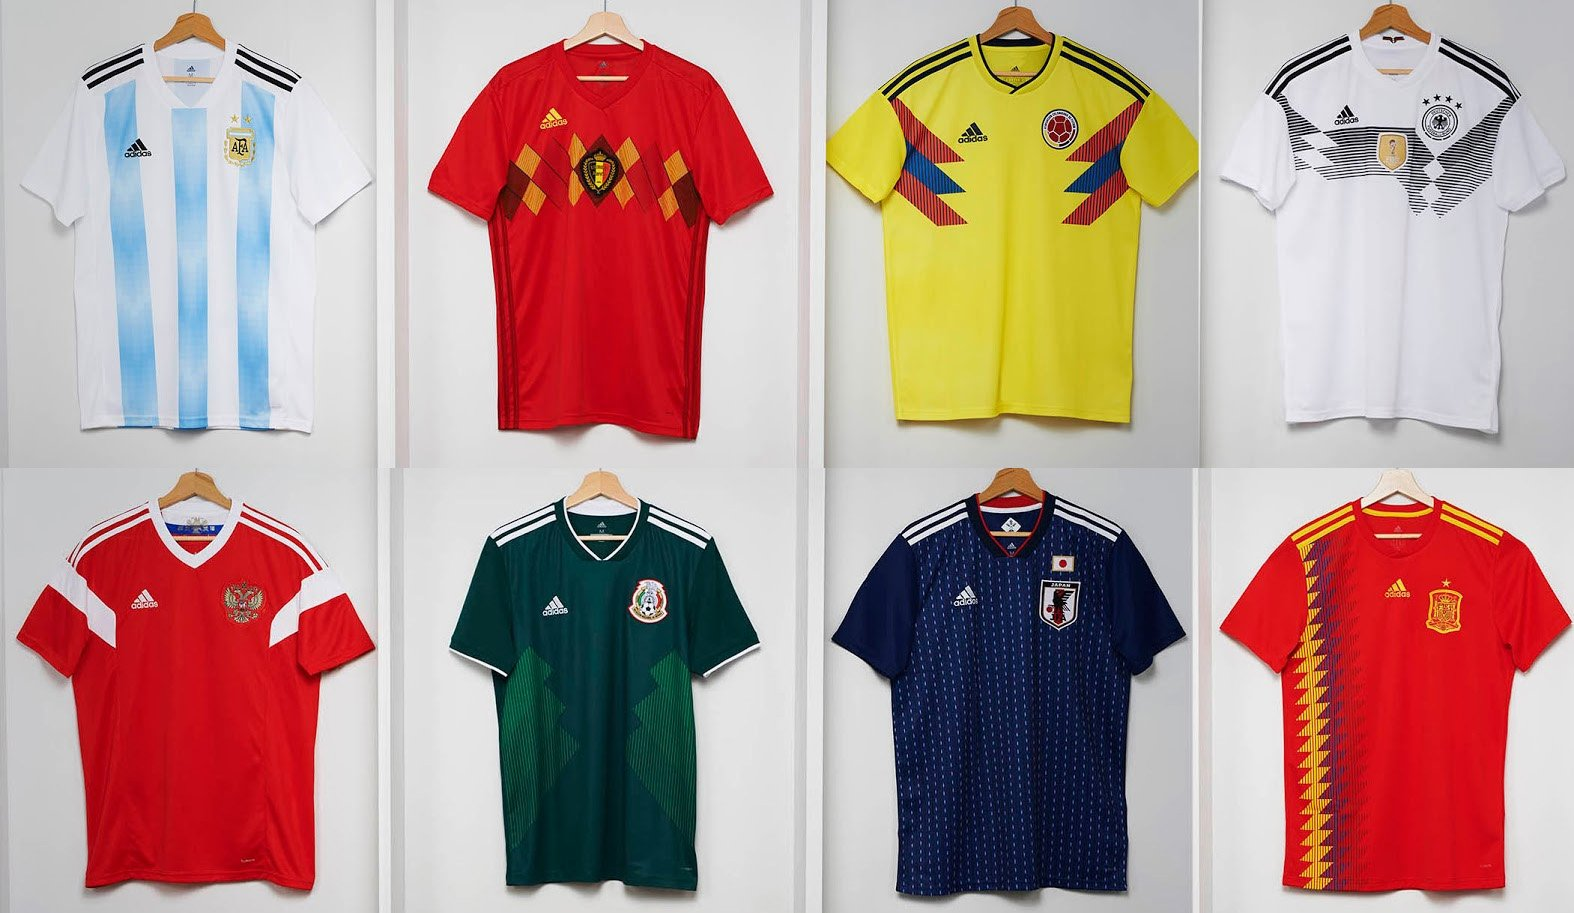 8ba6ee3d18 Os millennials mudaram até as camisetas da Copa do Mundo - 20 05 ...